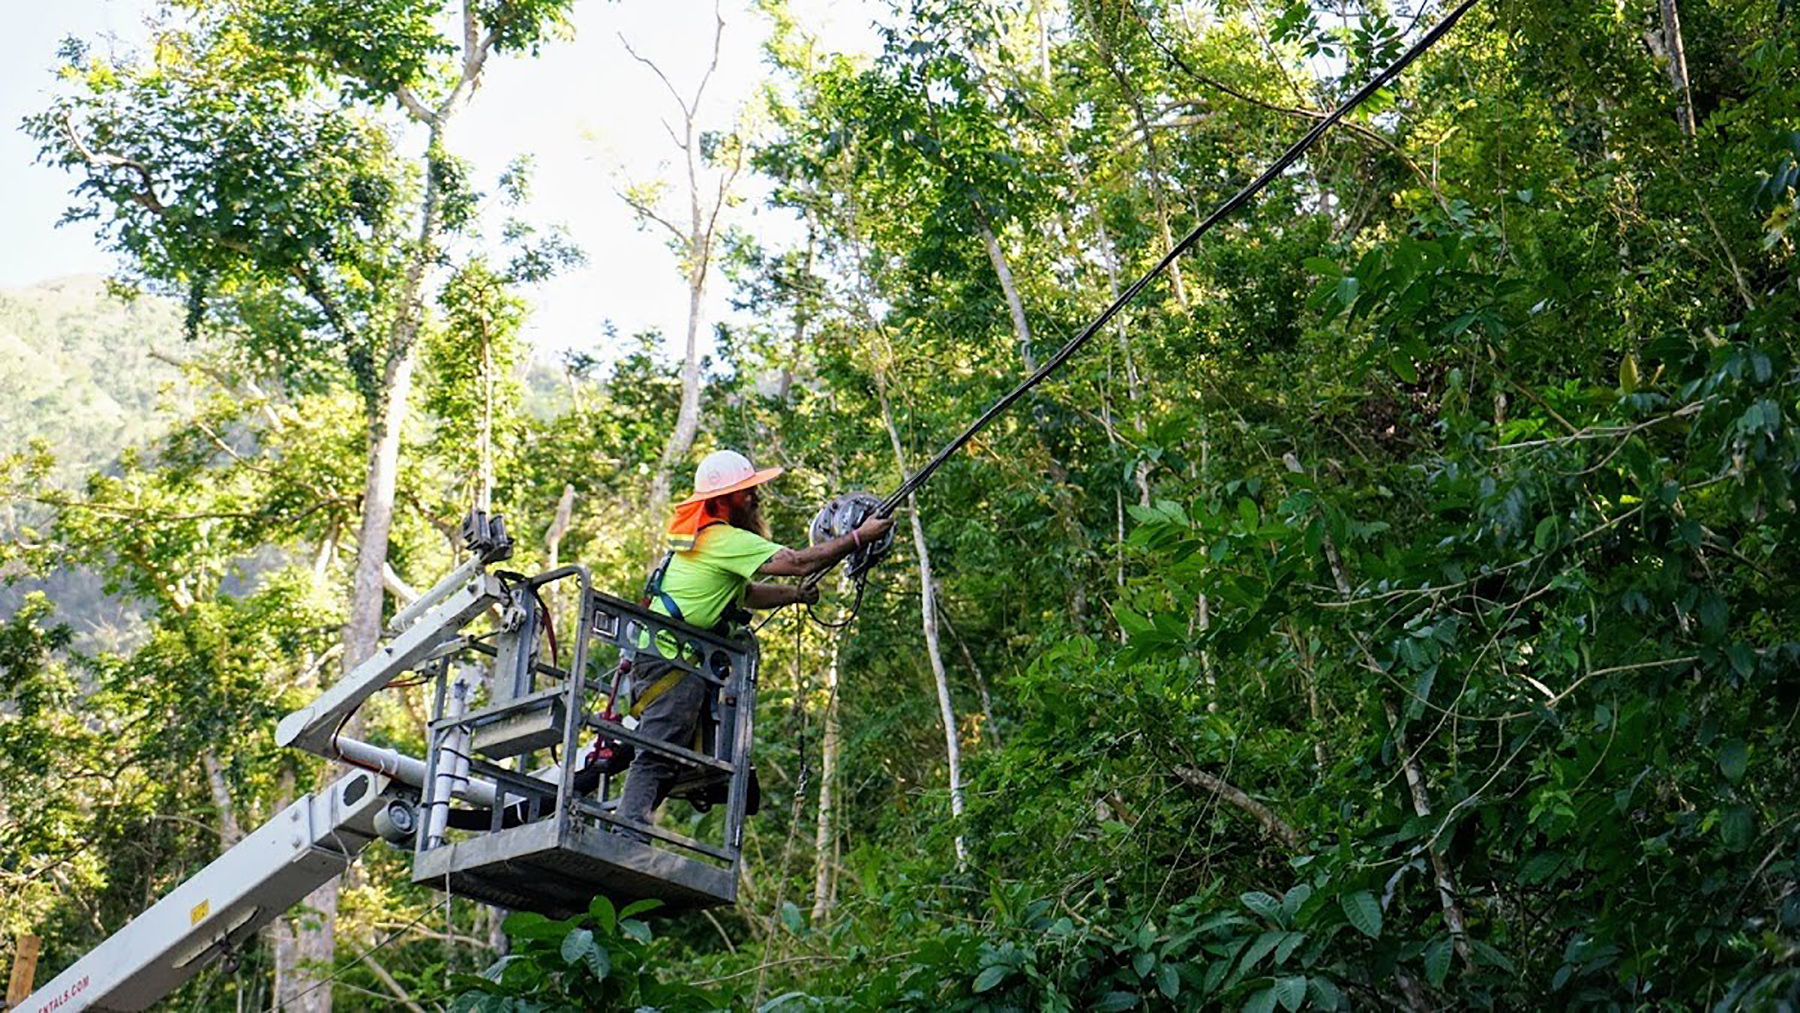 Power technicians work on downed lines in Puerto Rico after Hurricane Maria, which crippled the island's power system. The long-term power outage was linked to thousands of deaths on the island, including of patients without access to medical treatments like dialysis or oxygen that require electrical power. (Photo by Erika Rodriguez for Direct Relief)